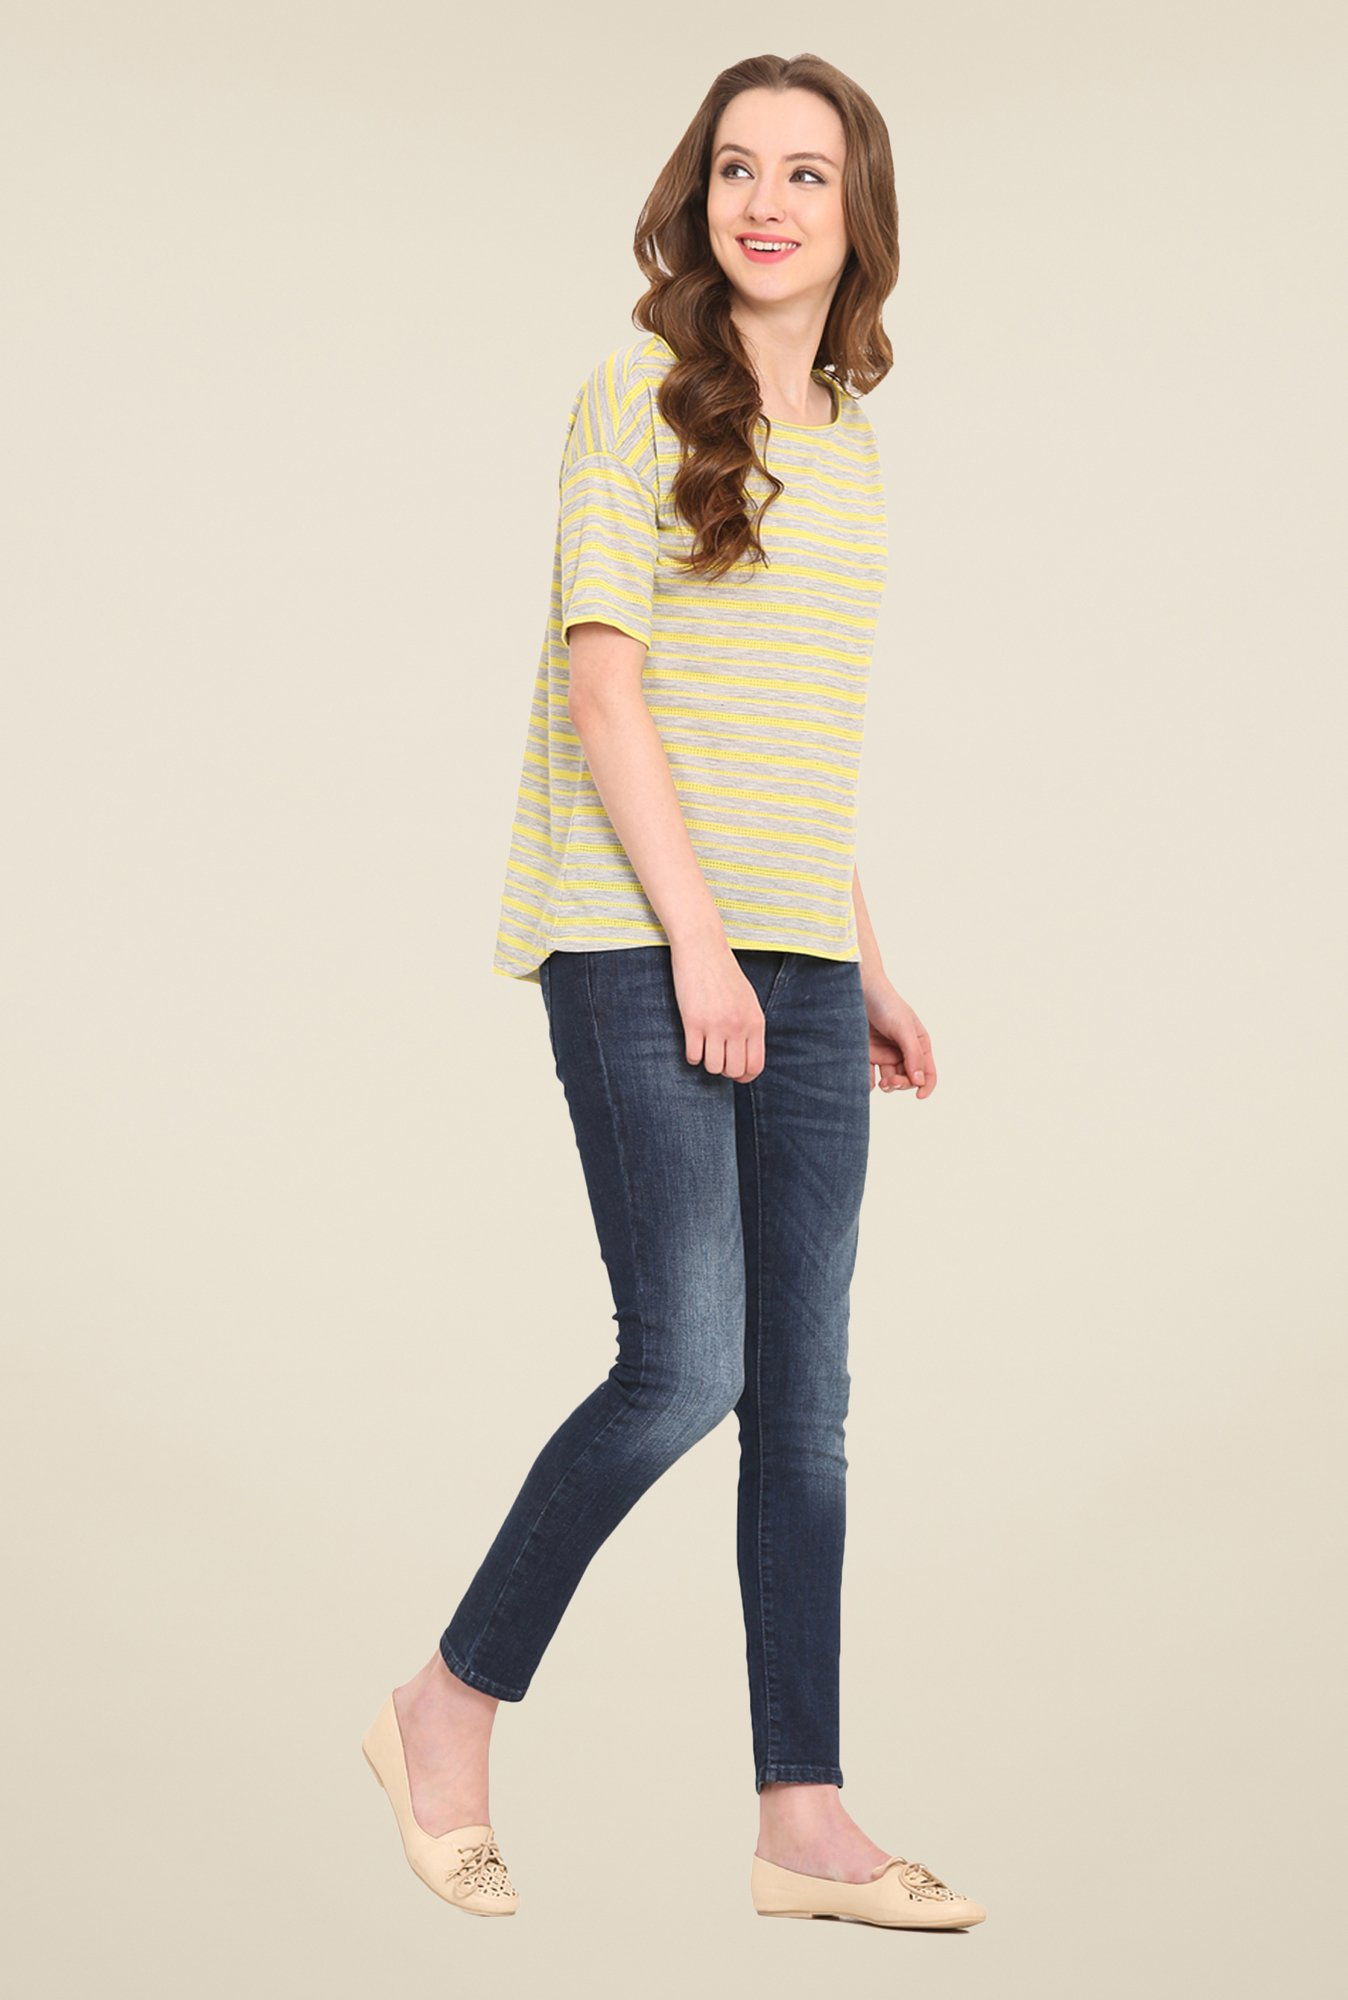 Saiesta Grey Striped Top